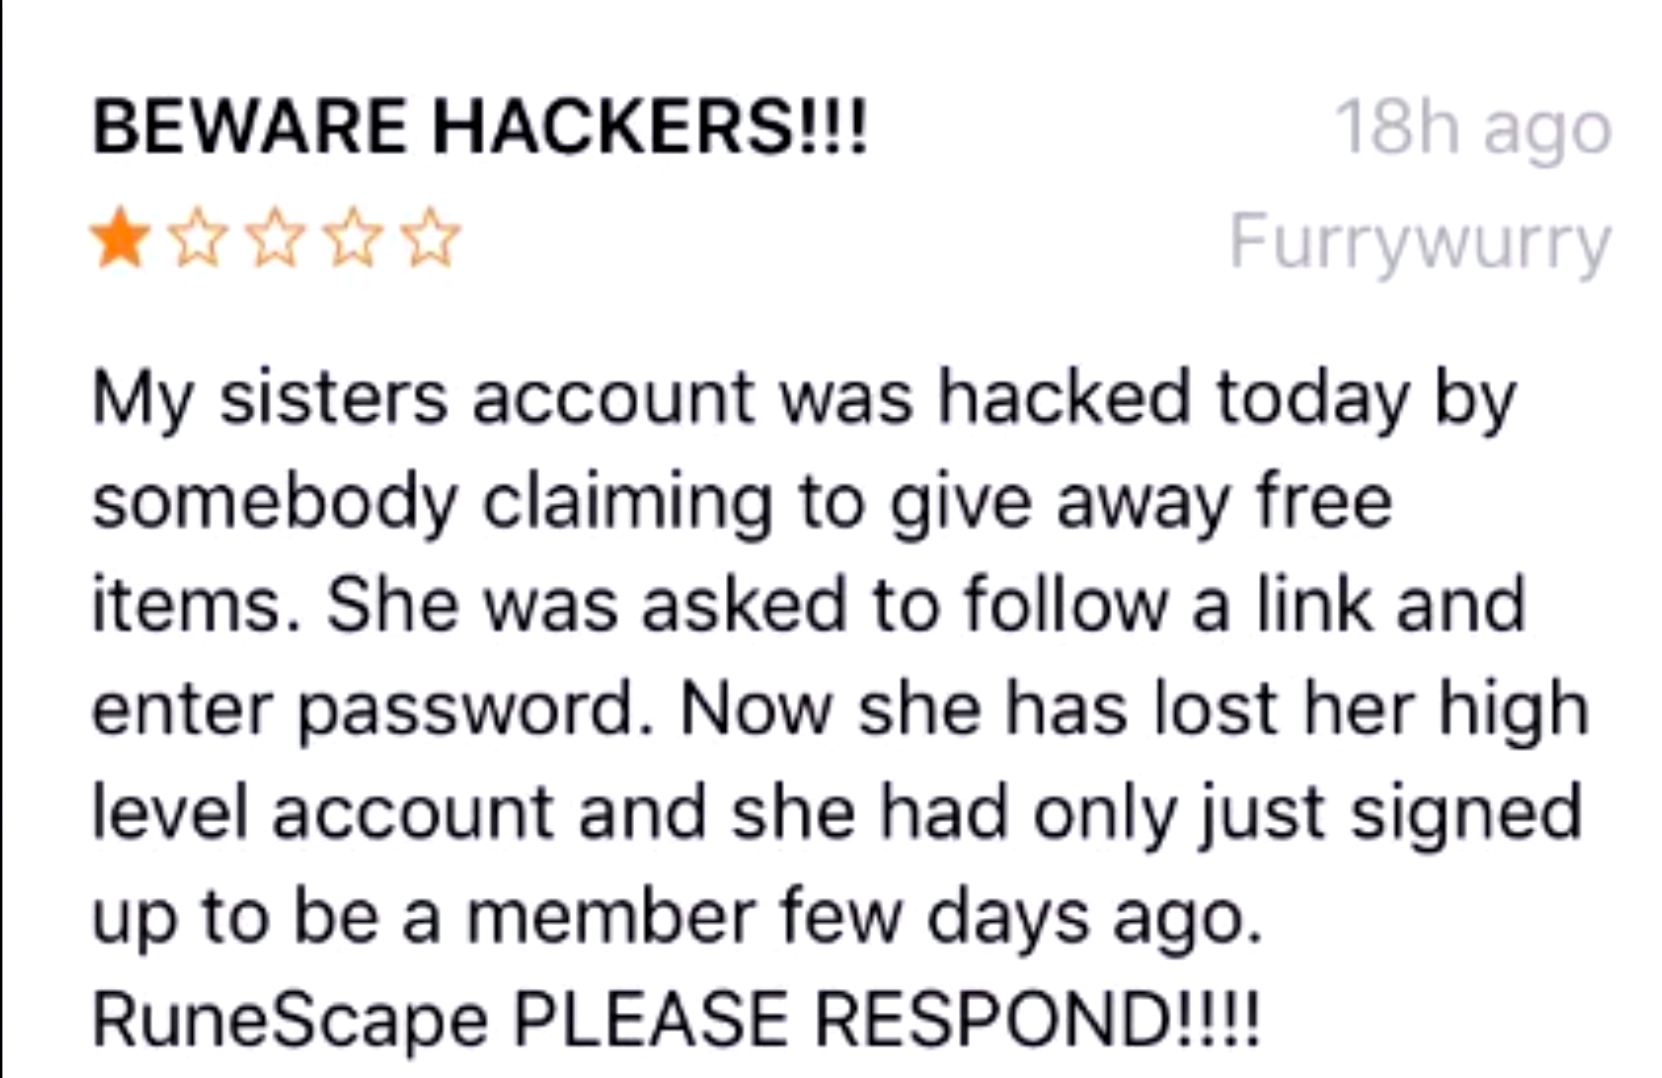 This is one of more popular scam methods, pay attention!